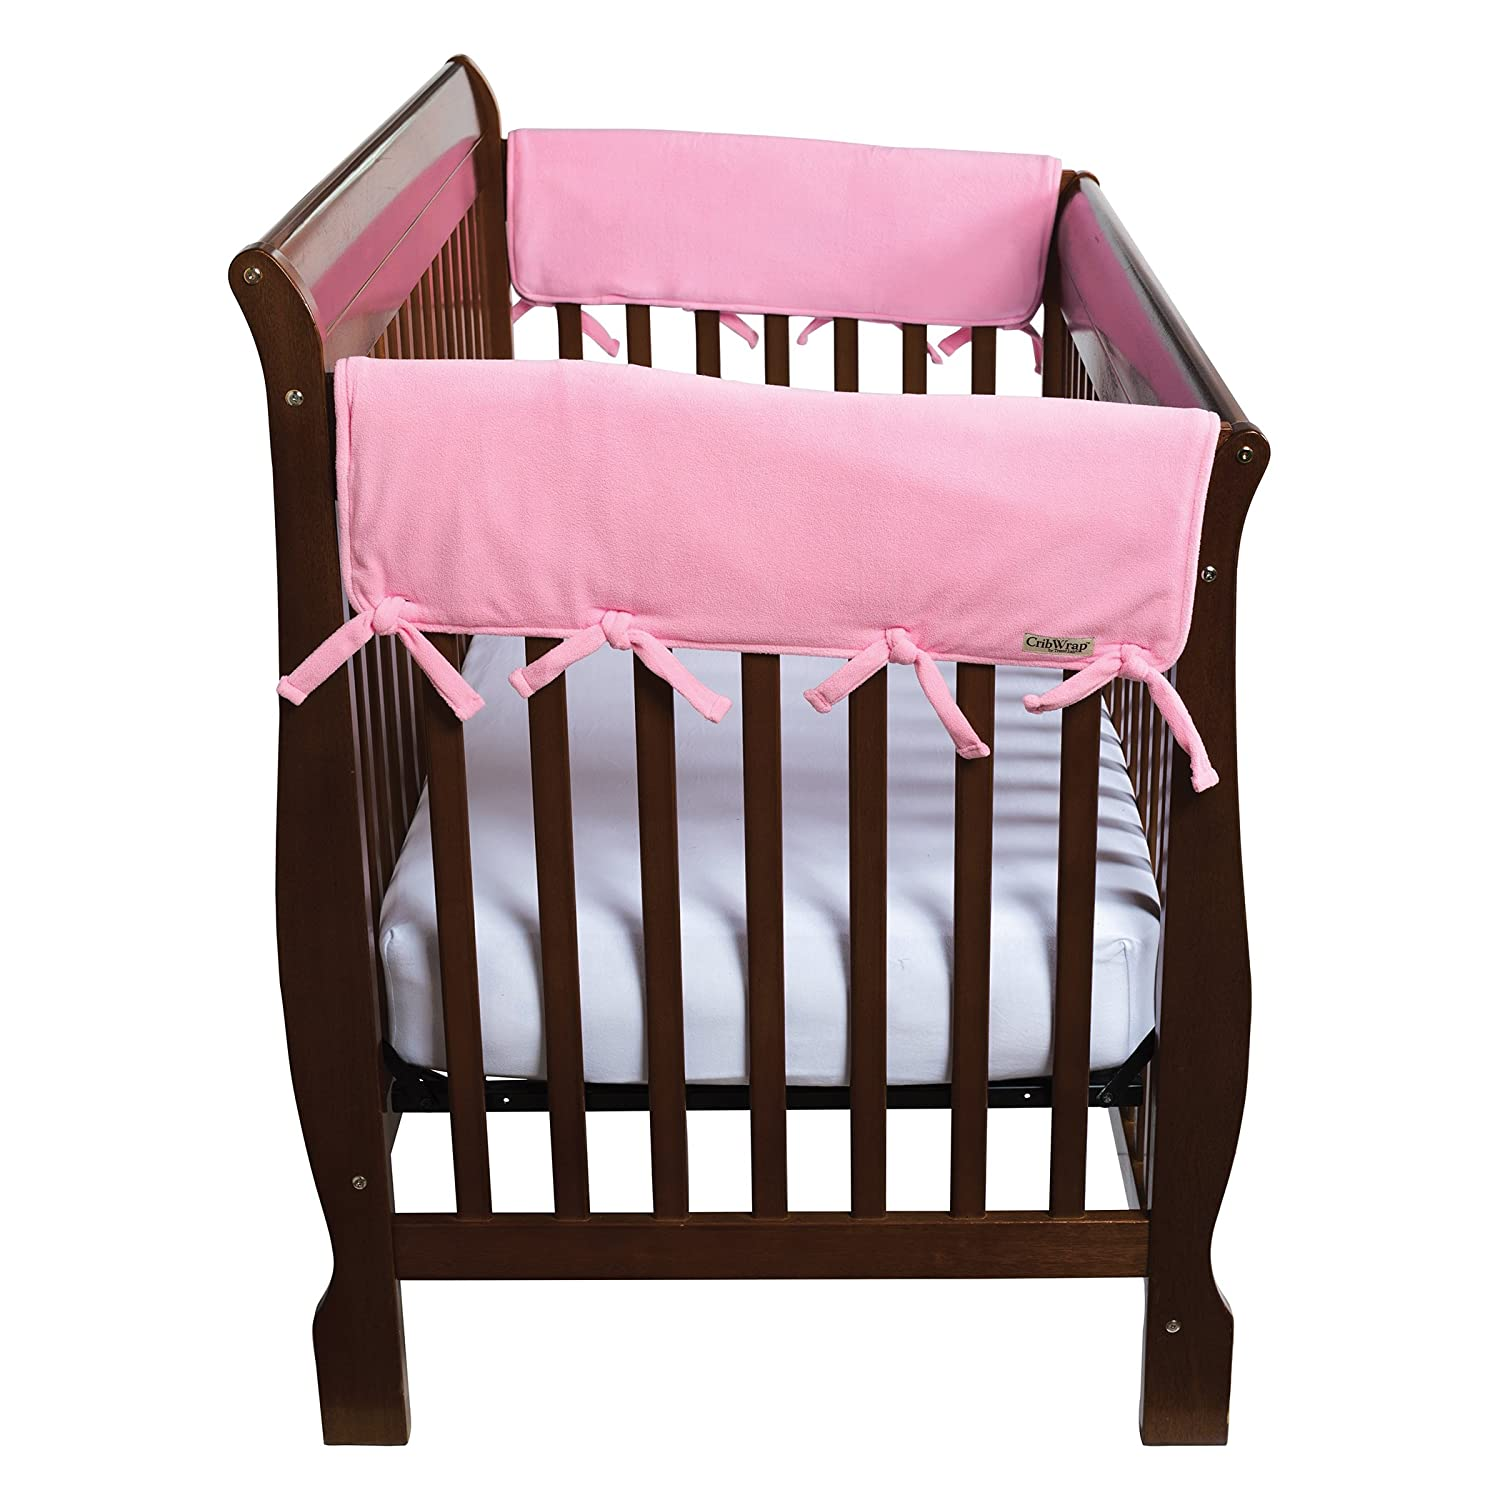 Trend Lab Fleece CribWrap Rail Covers for Crib Sides (Set of 2), Pink, Wide 109050